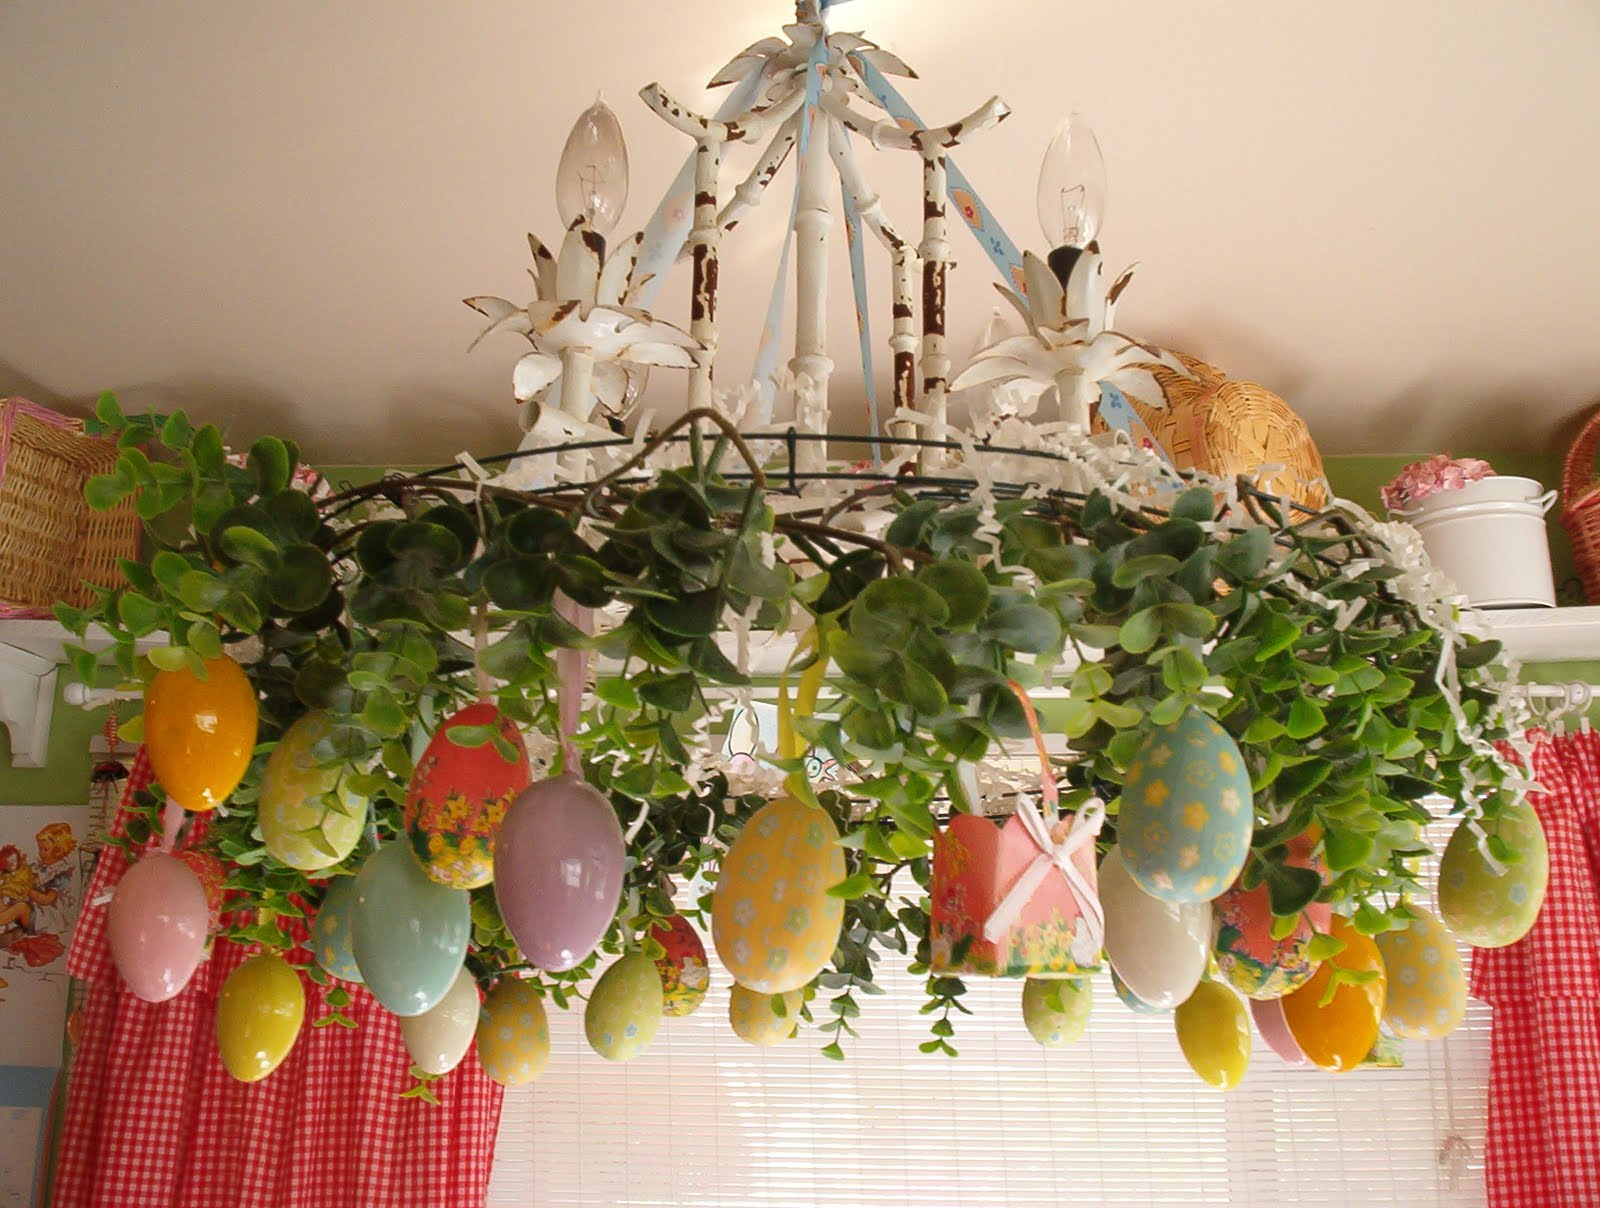 Easter decorations 2017 grasscloth wallpaper for Home decorations images